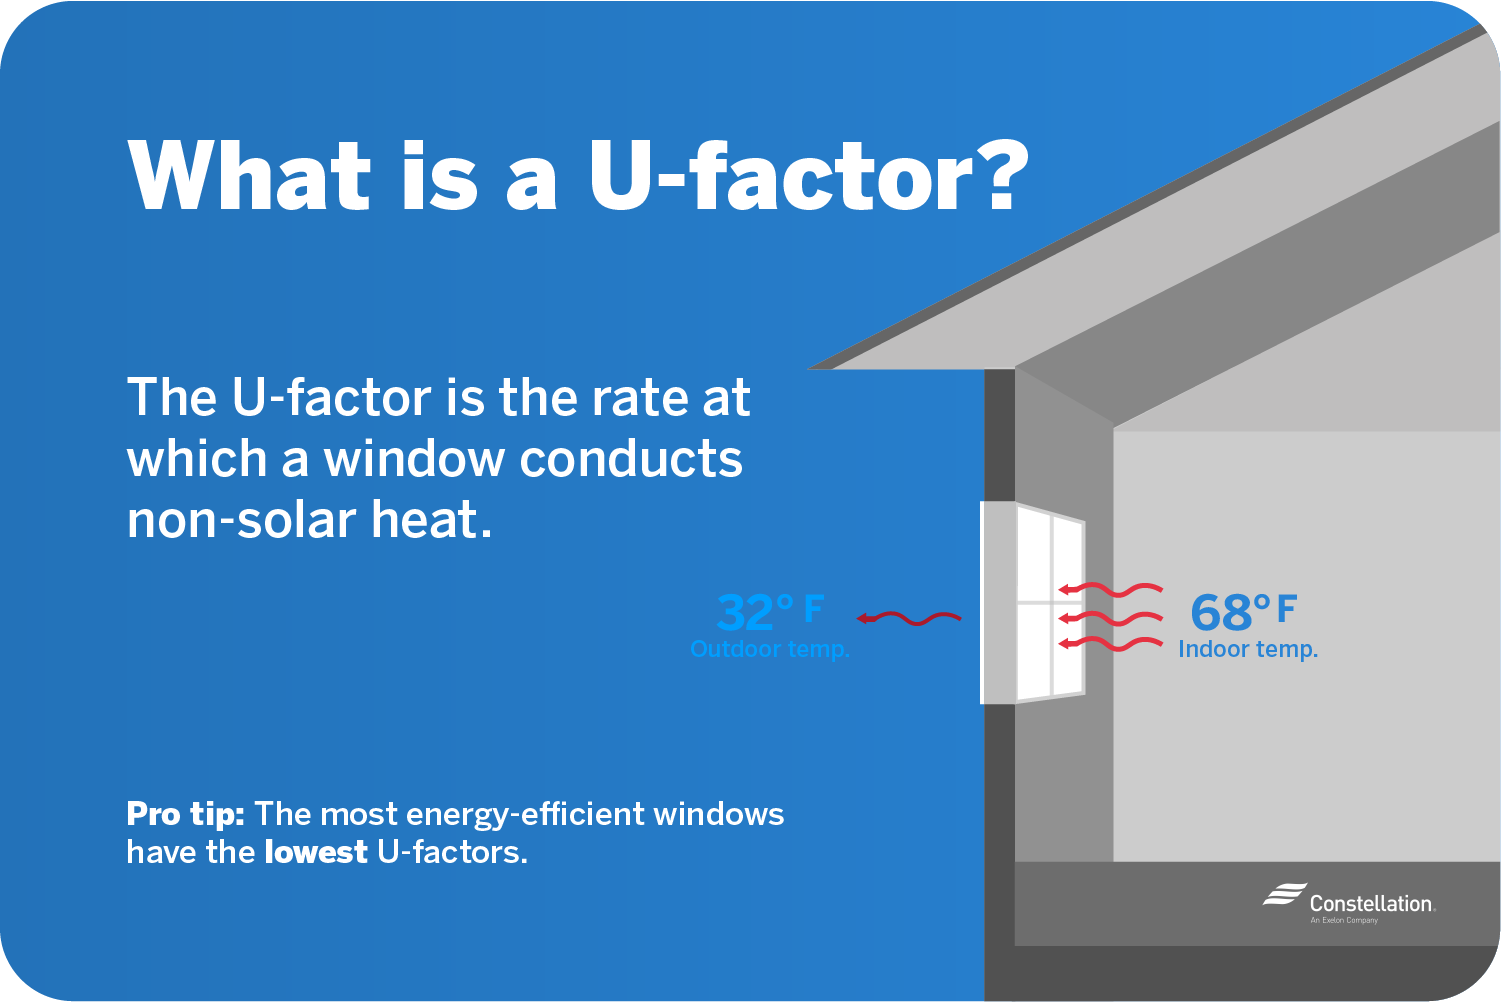 U-factor is the rate at which a window conducts non-solar heat.